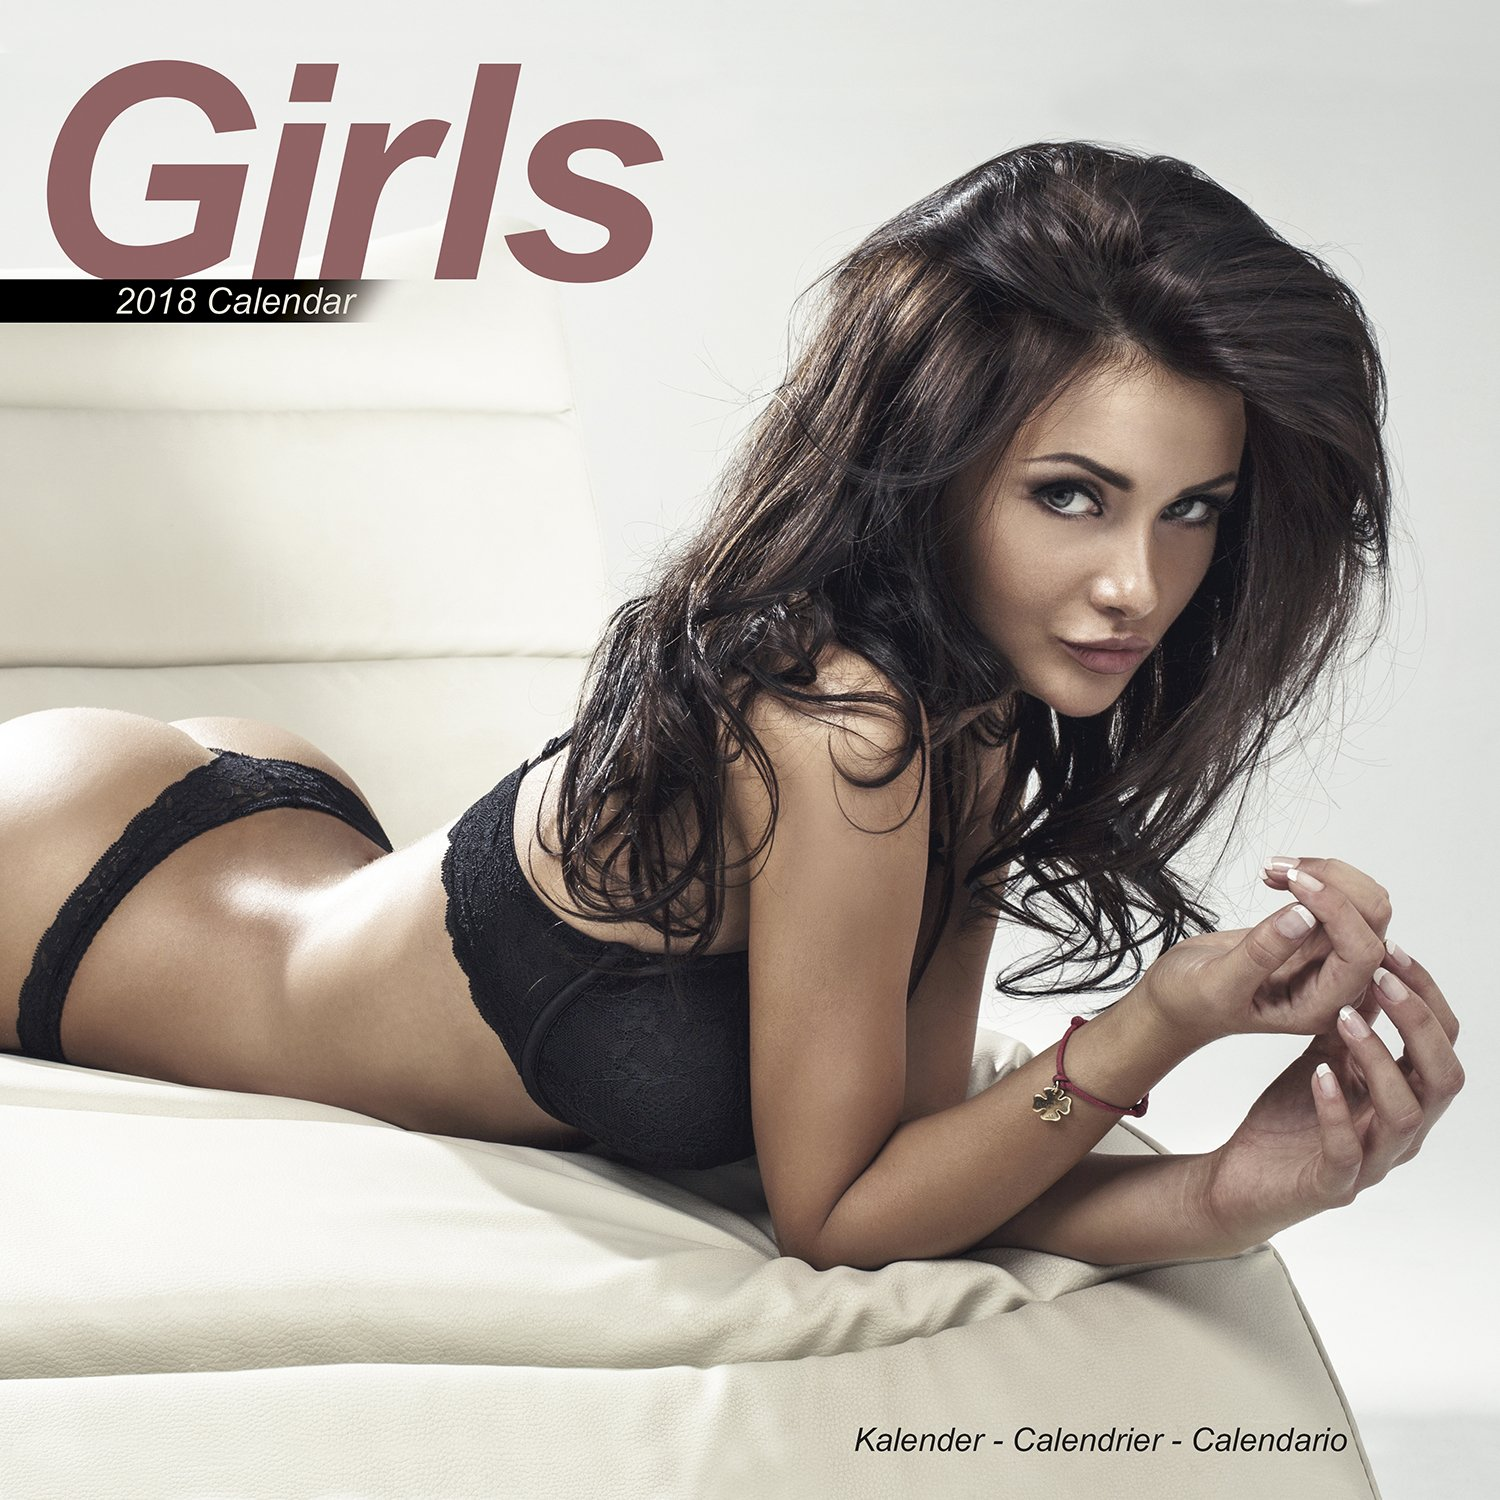 Hot Calendario.Hot Girl Calendar Calendar Girls Girls Next Door